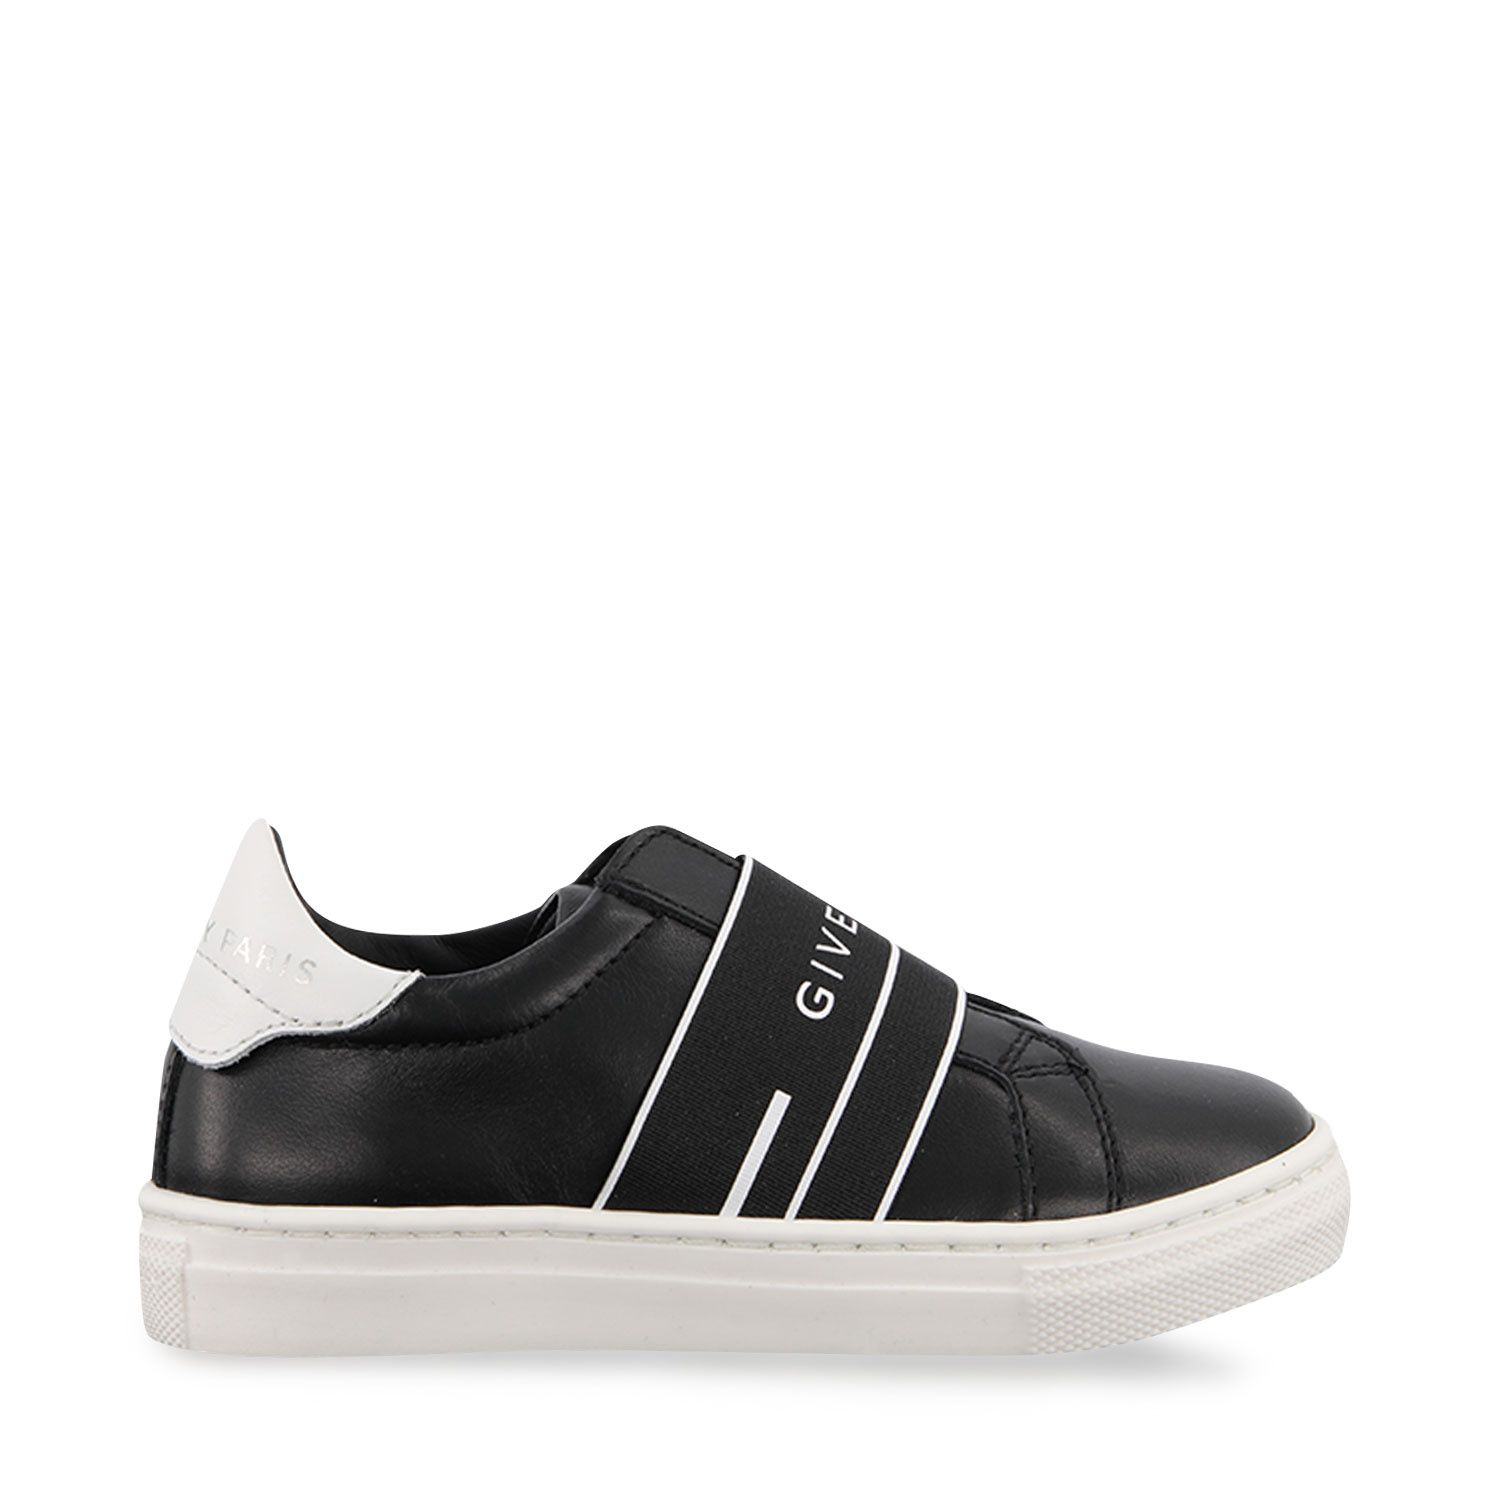 Picture of Givenchy H29036 kids sneakers black